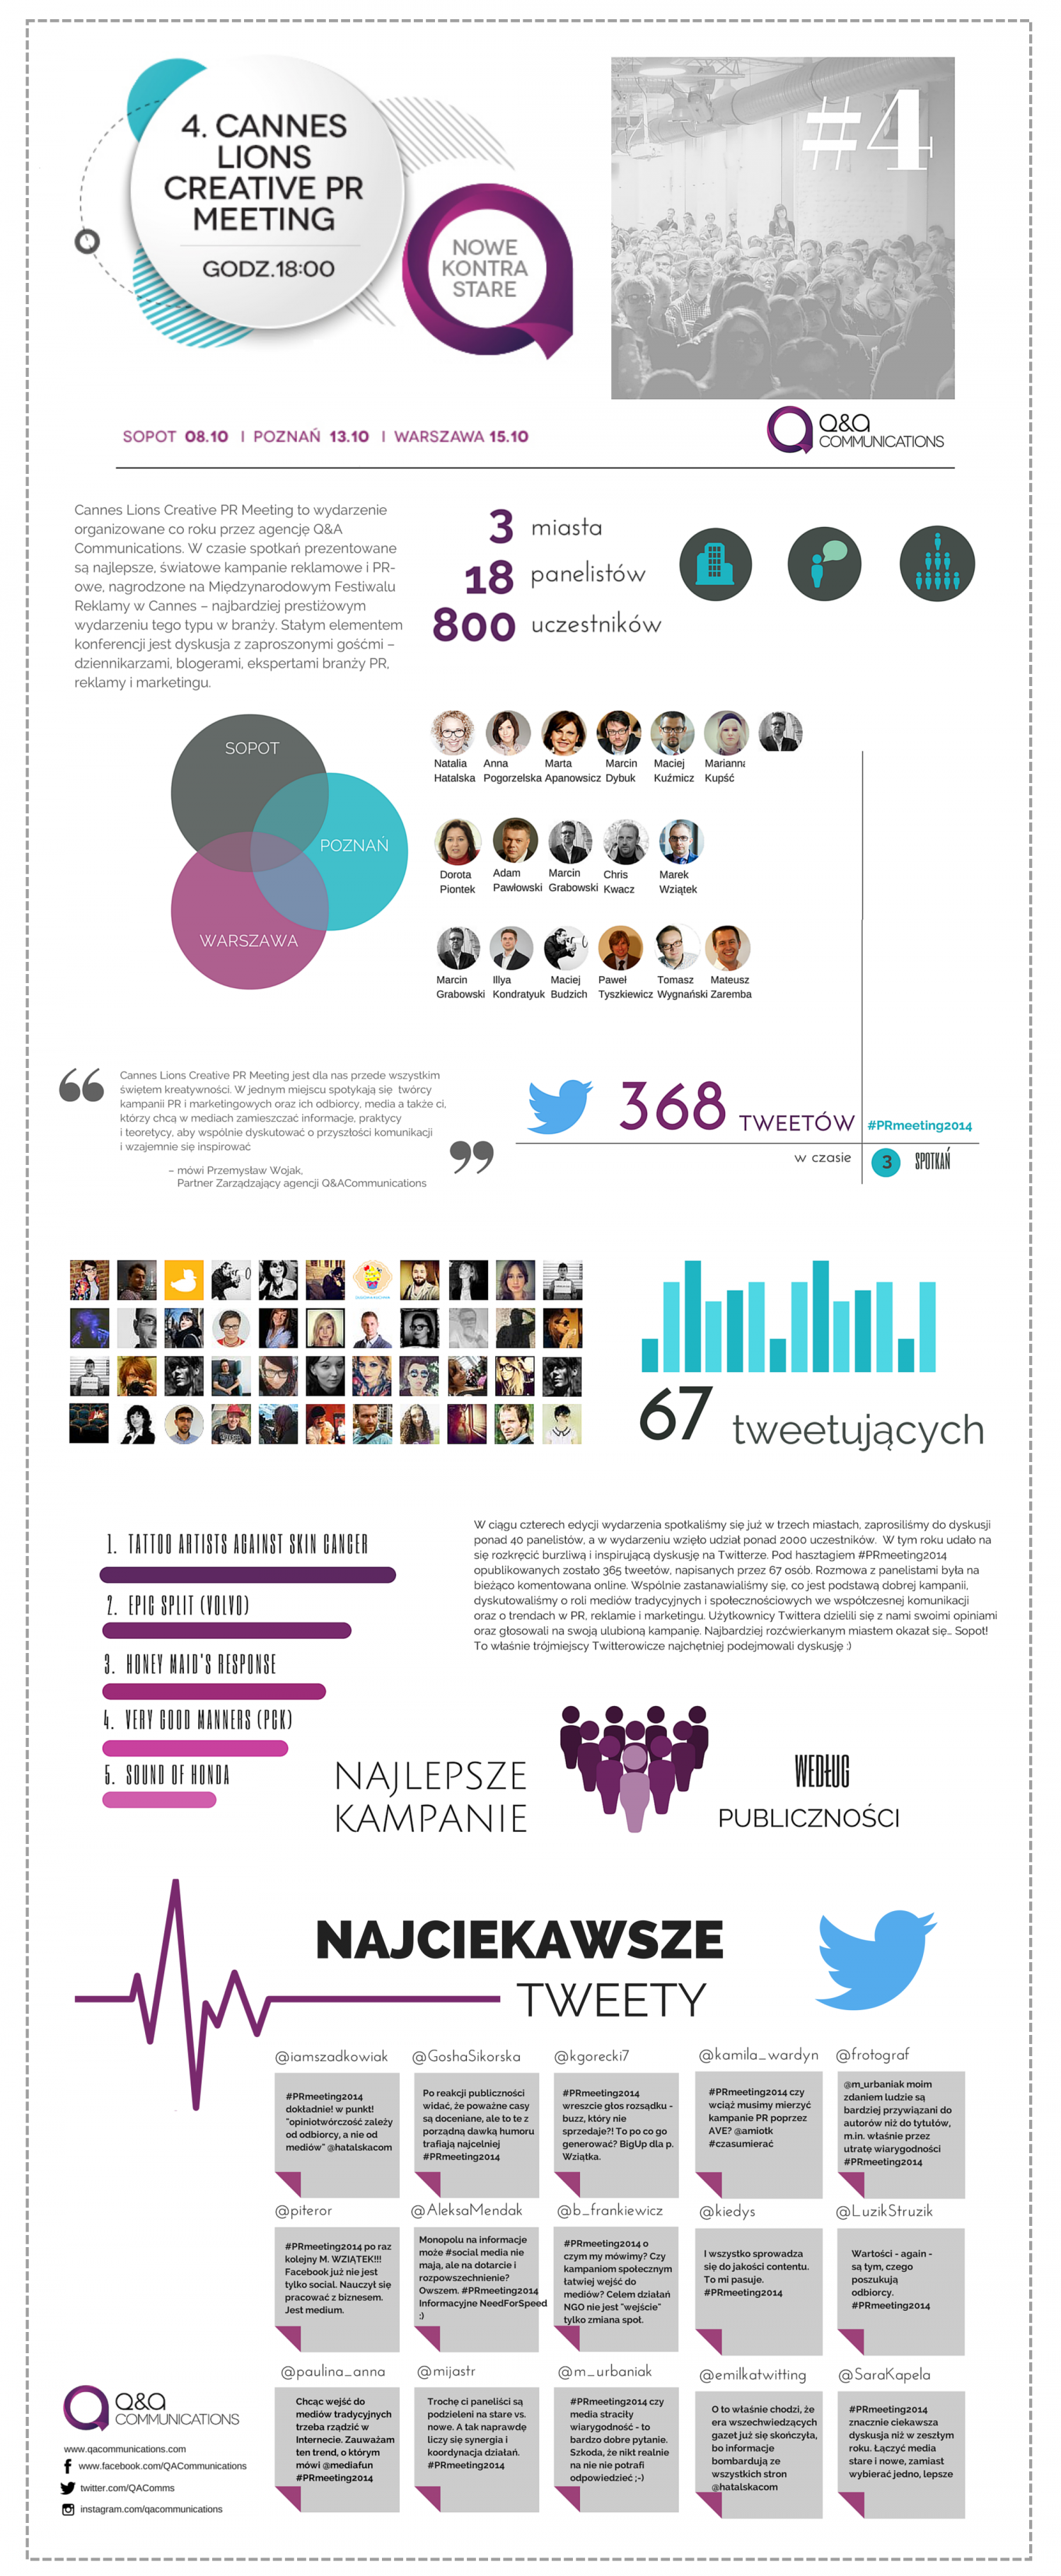 Podsumowanie 4. edycji Cannes Lions Creative PR Meeting Infographic